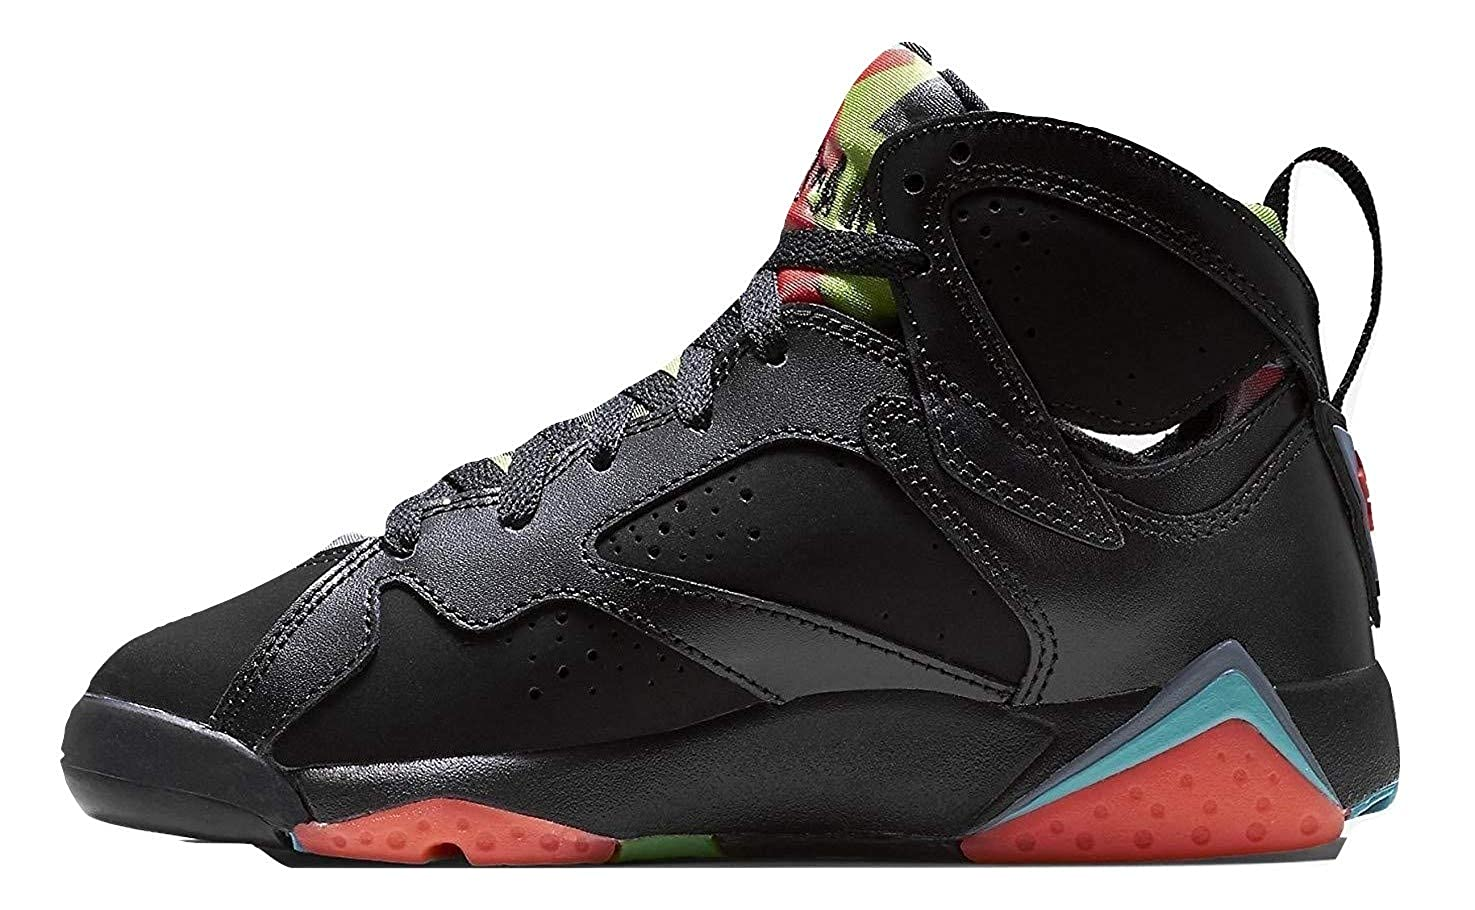 buy online 10428 e36af Amazon.com   NIKE Men s Air Jordan 7 Retro 30th BG Marvin The Martian Size  6Y   Basketball